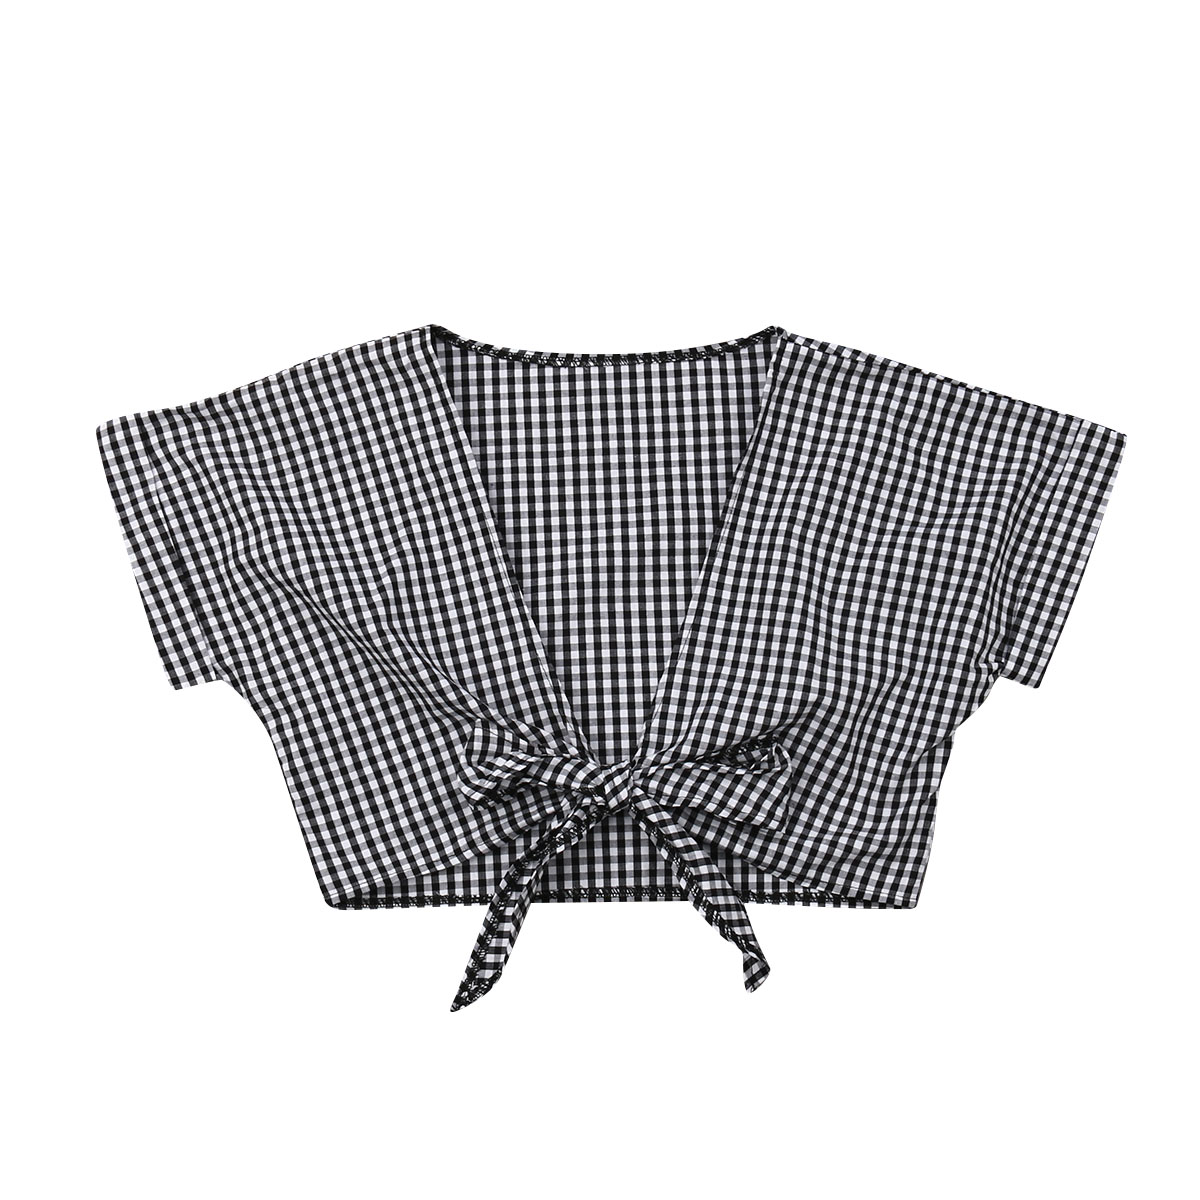 Women's Clothing 2019 Women Fashion Plaids V-neck Short Blouse Lady Girls Casual Top Blouses Ladies Slim Crop Tops Shirts We Take Customers As Our Gods